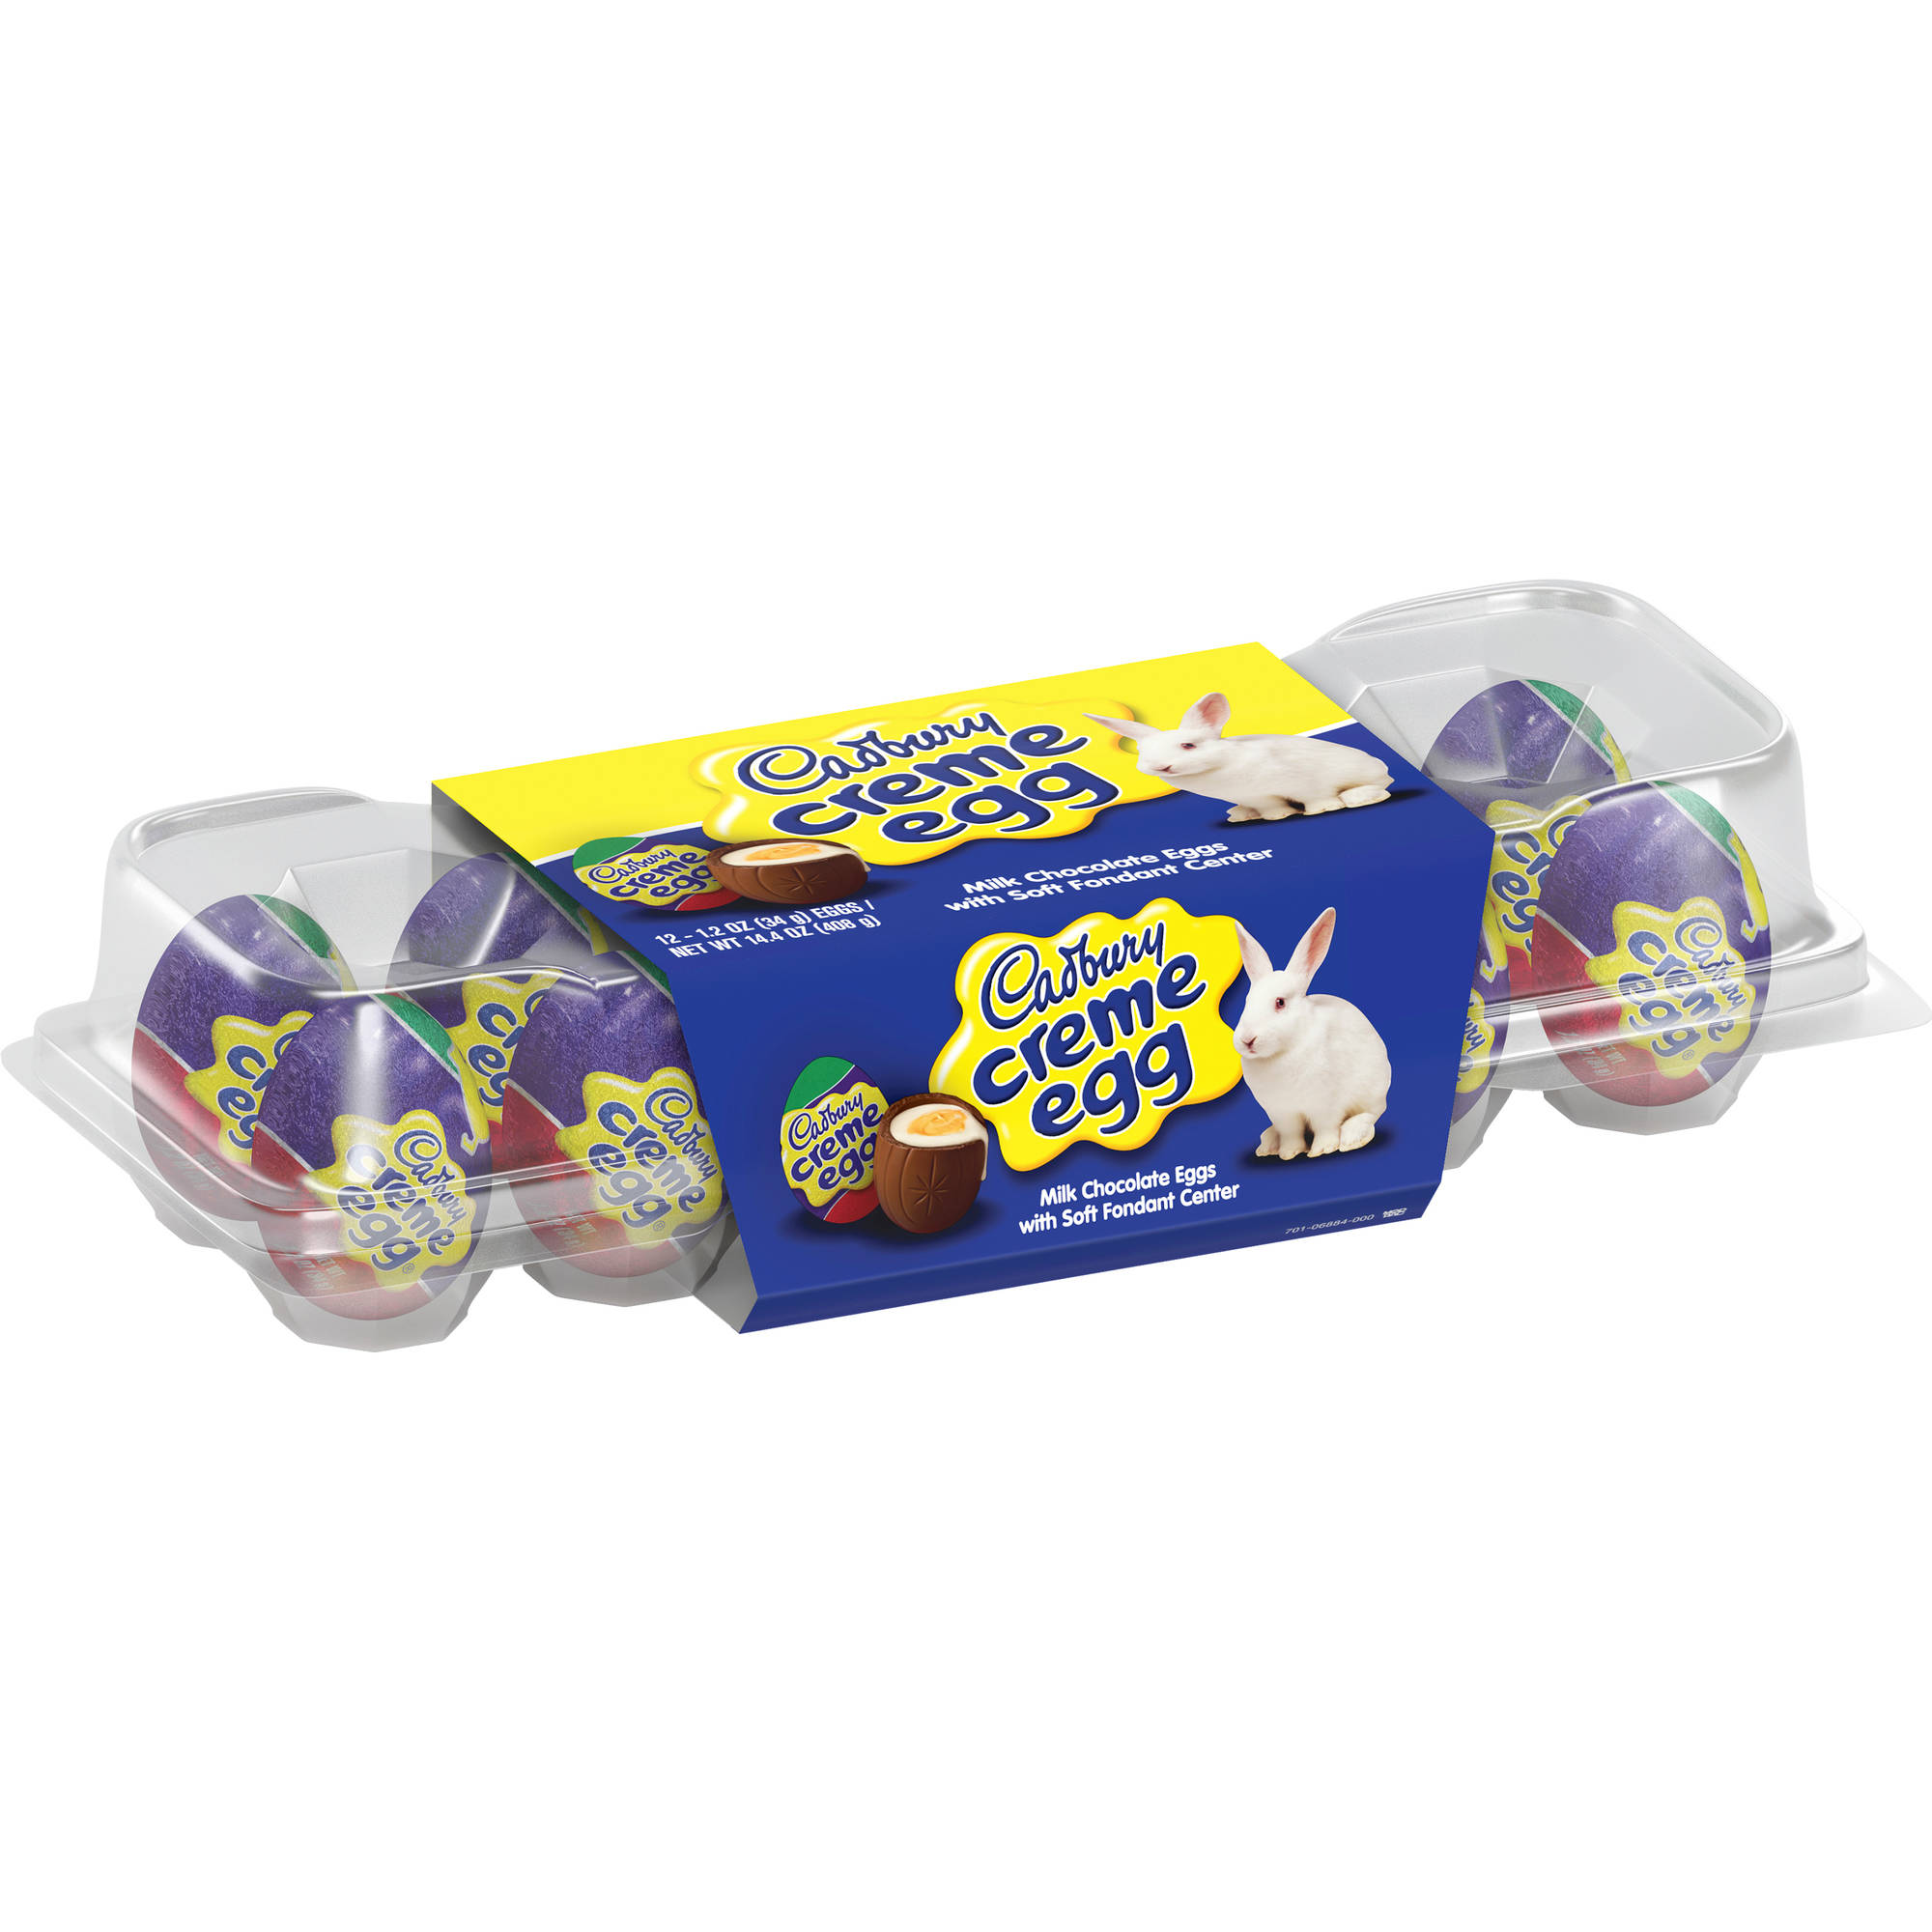 Cadbury Creme Eggs, Easter Milk Chocolate Creme Filled Eggs Candy, 1.2 Oz, 12 Ct